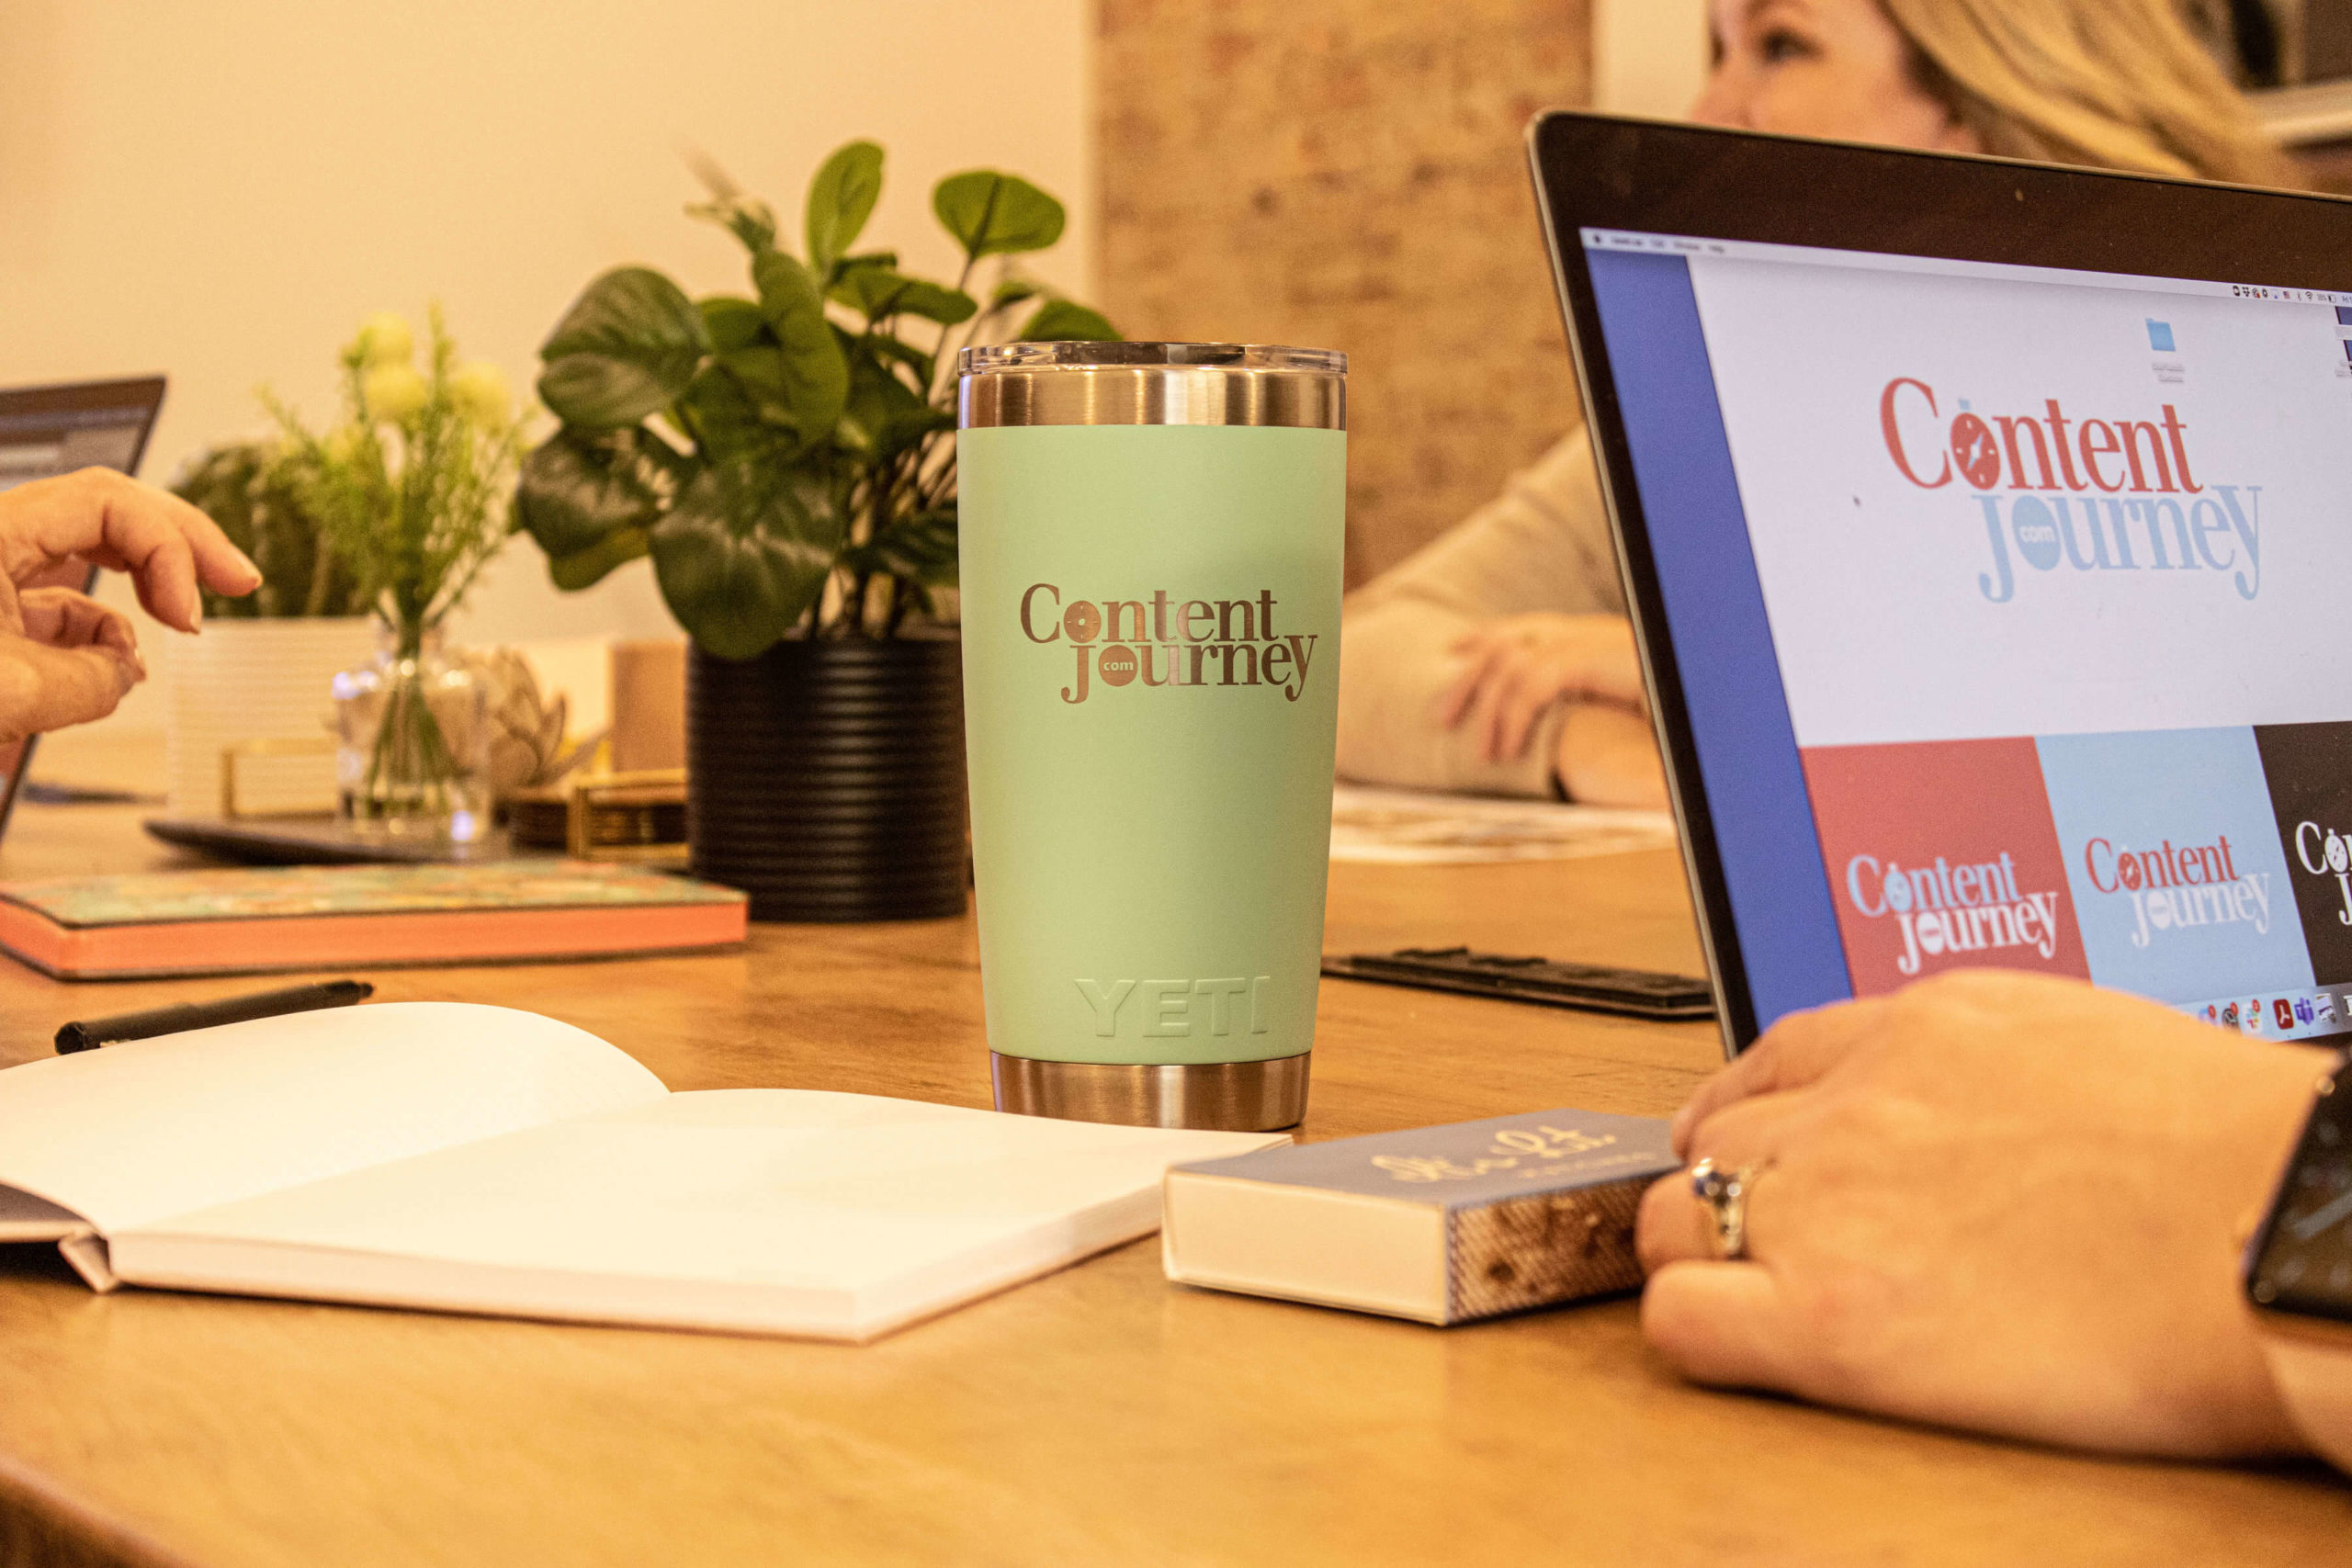 A computer and a coffee mug sit on a table where women are working, the logo for Content Journey is displayed